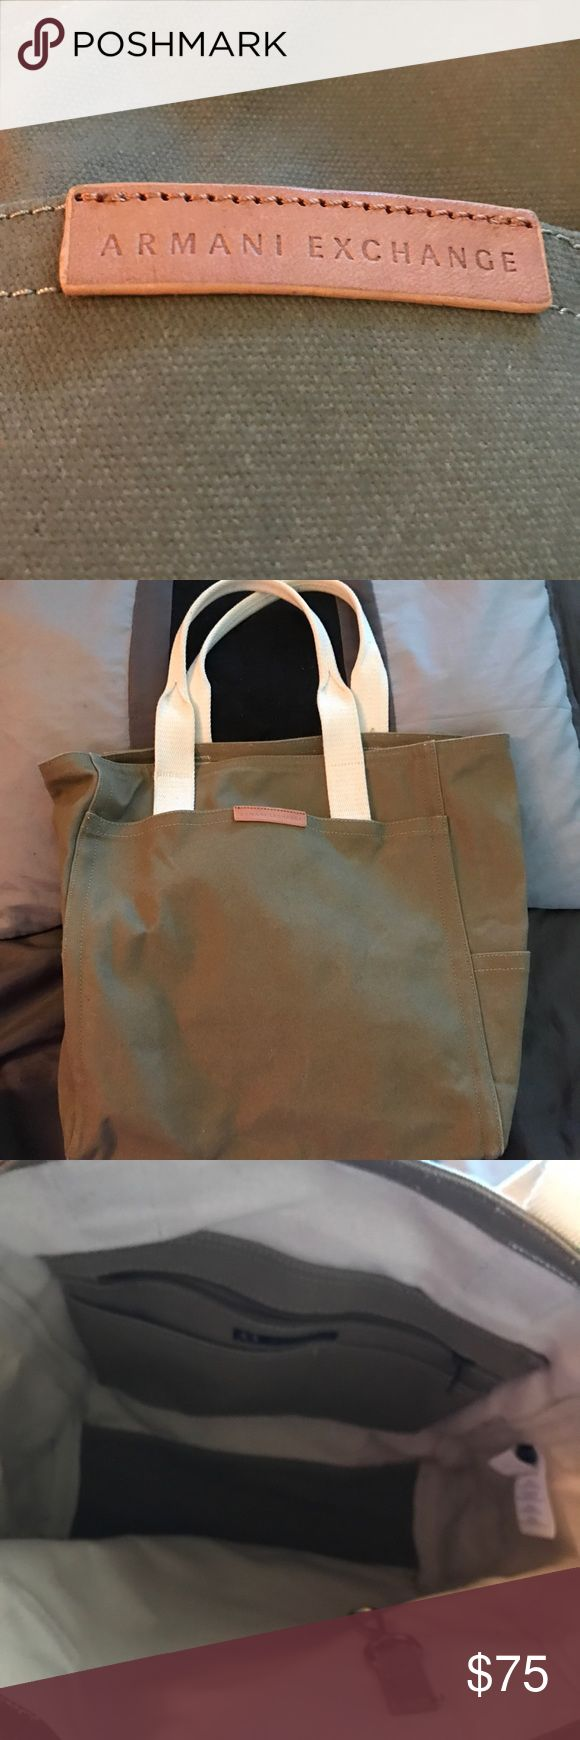 %Authentic Armani Exchange tote bag NEW  %Authentic Armani Exchange canvas tote bag NEW color cream and military green color  This roomy canvas tote has sturdy style.  Easy everyday tote.   Leather branded patch and multiple pockets see the pic Armani Exchange Bags Totes